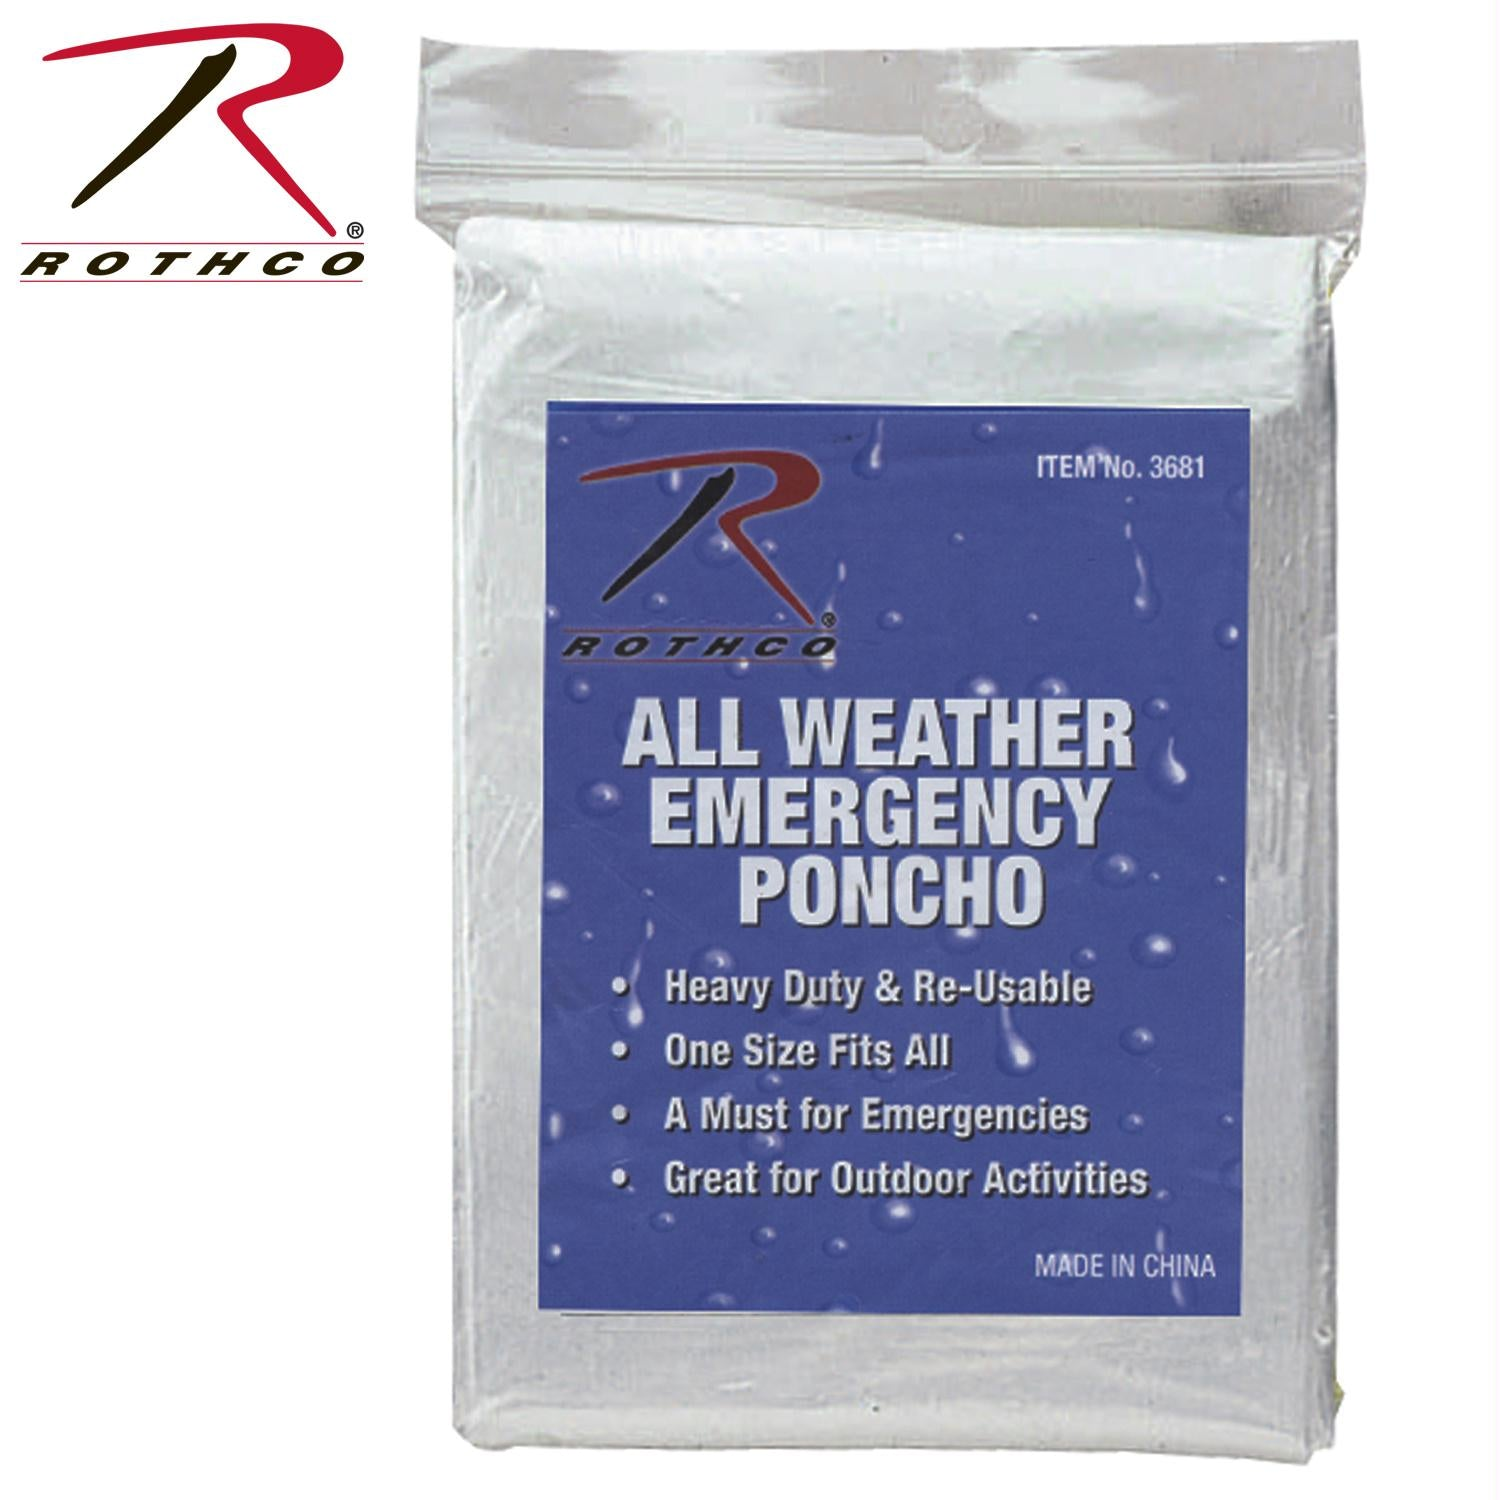 Rothco All Weather Emergency Poncho - Clear